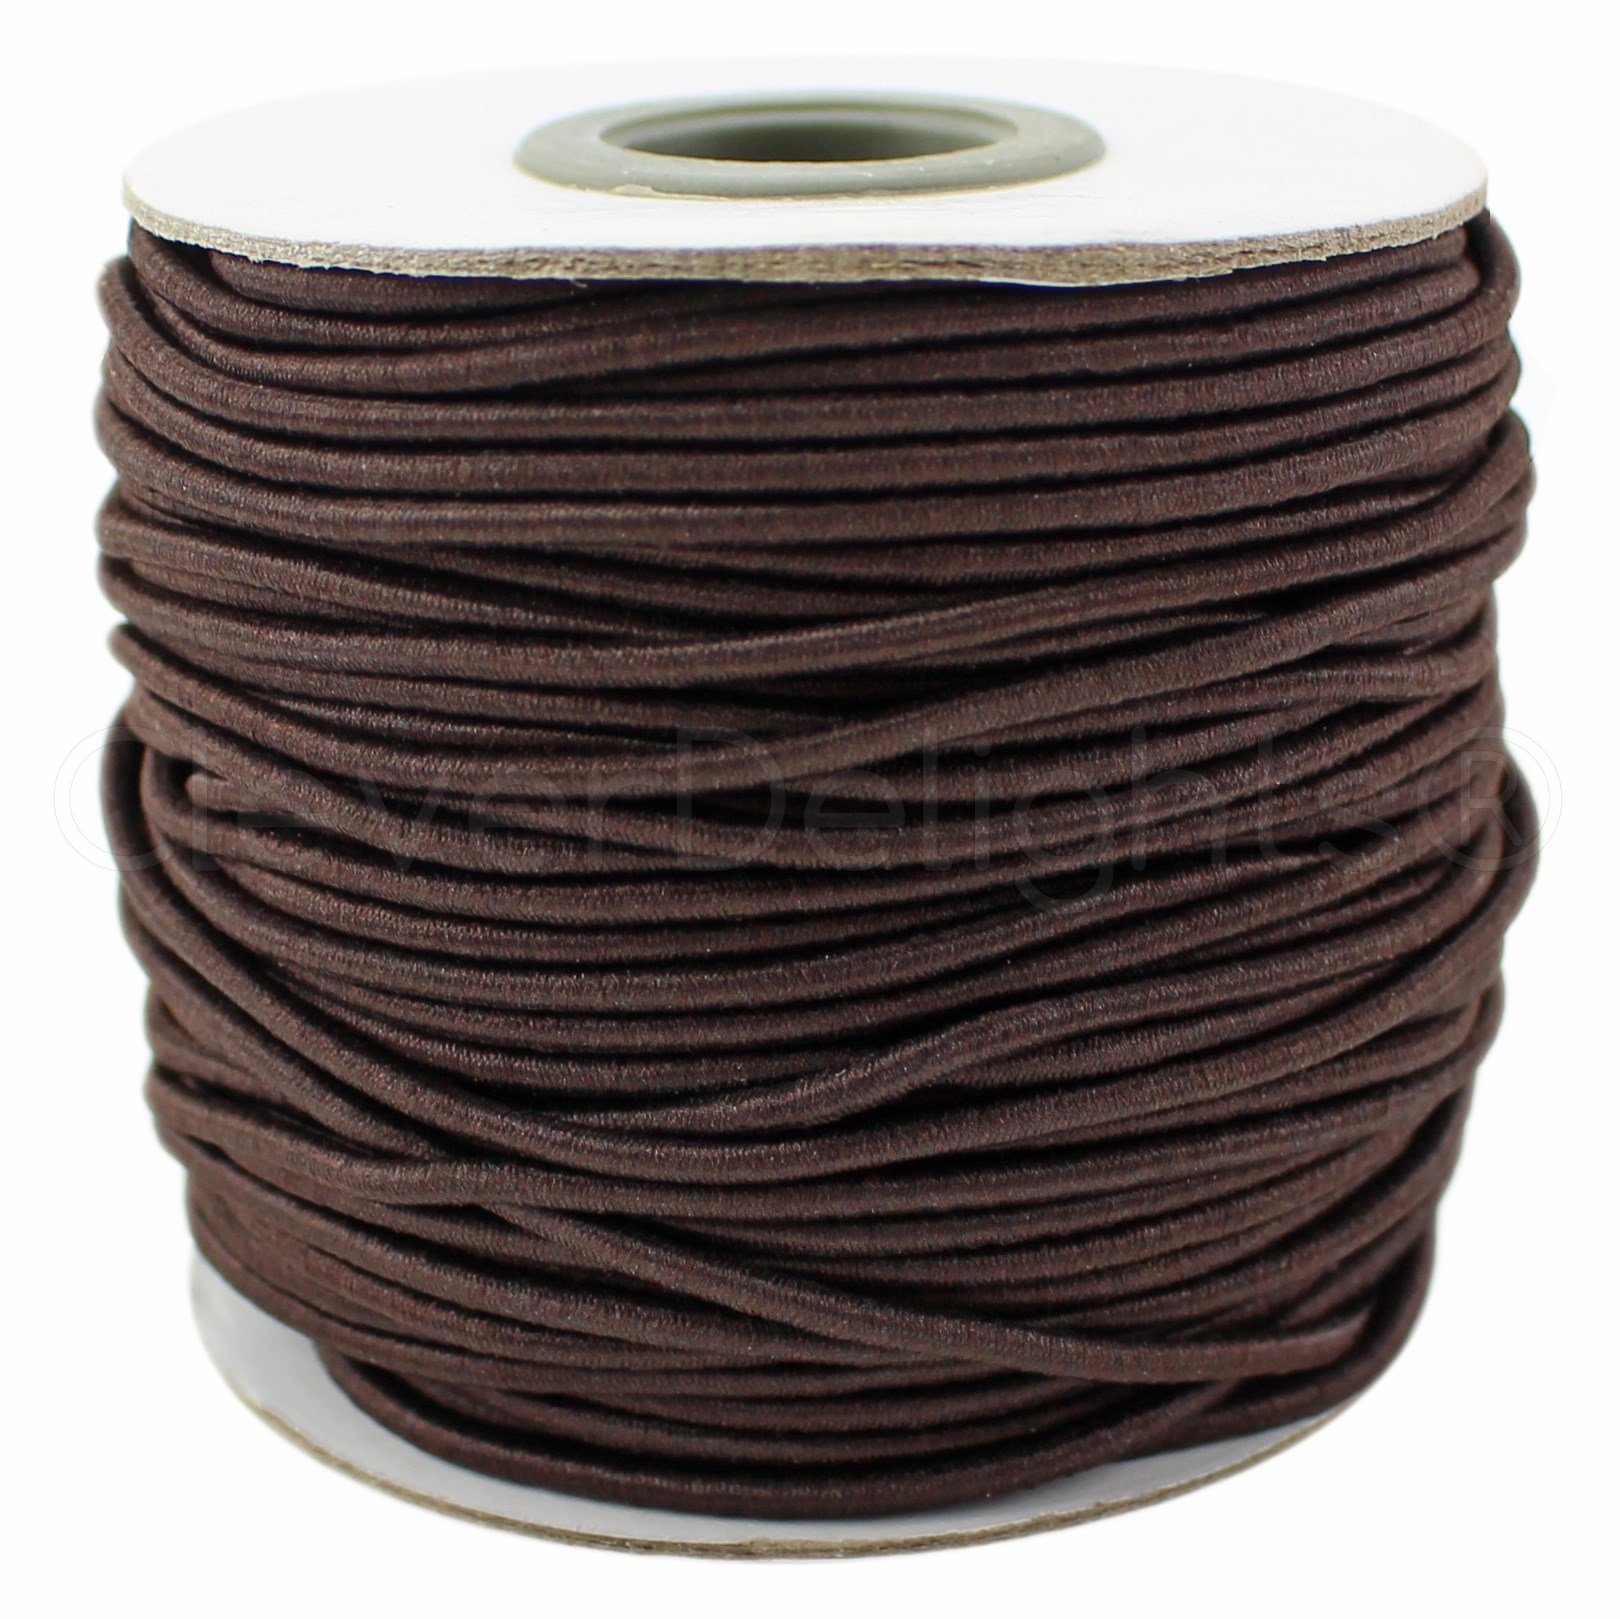 CleverDelights Brown Fabric Elastic Cord - 44 Yards - 2mm - Crafts Beading Jewelry Stretch Shock Cording by CleverDelights